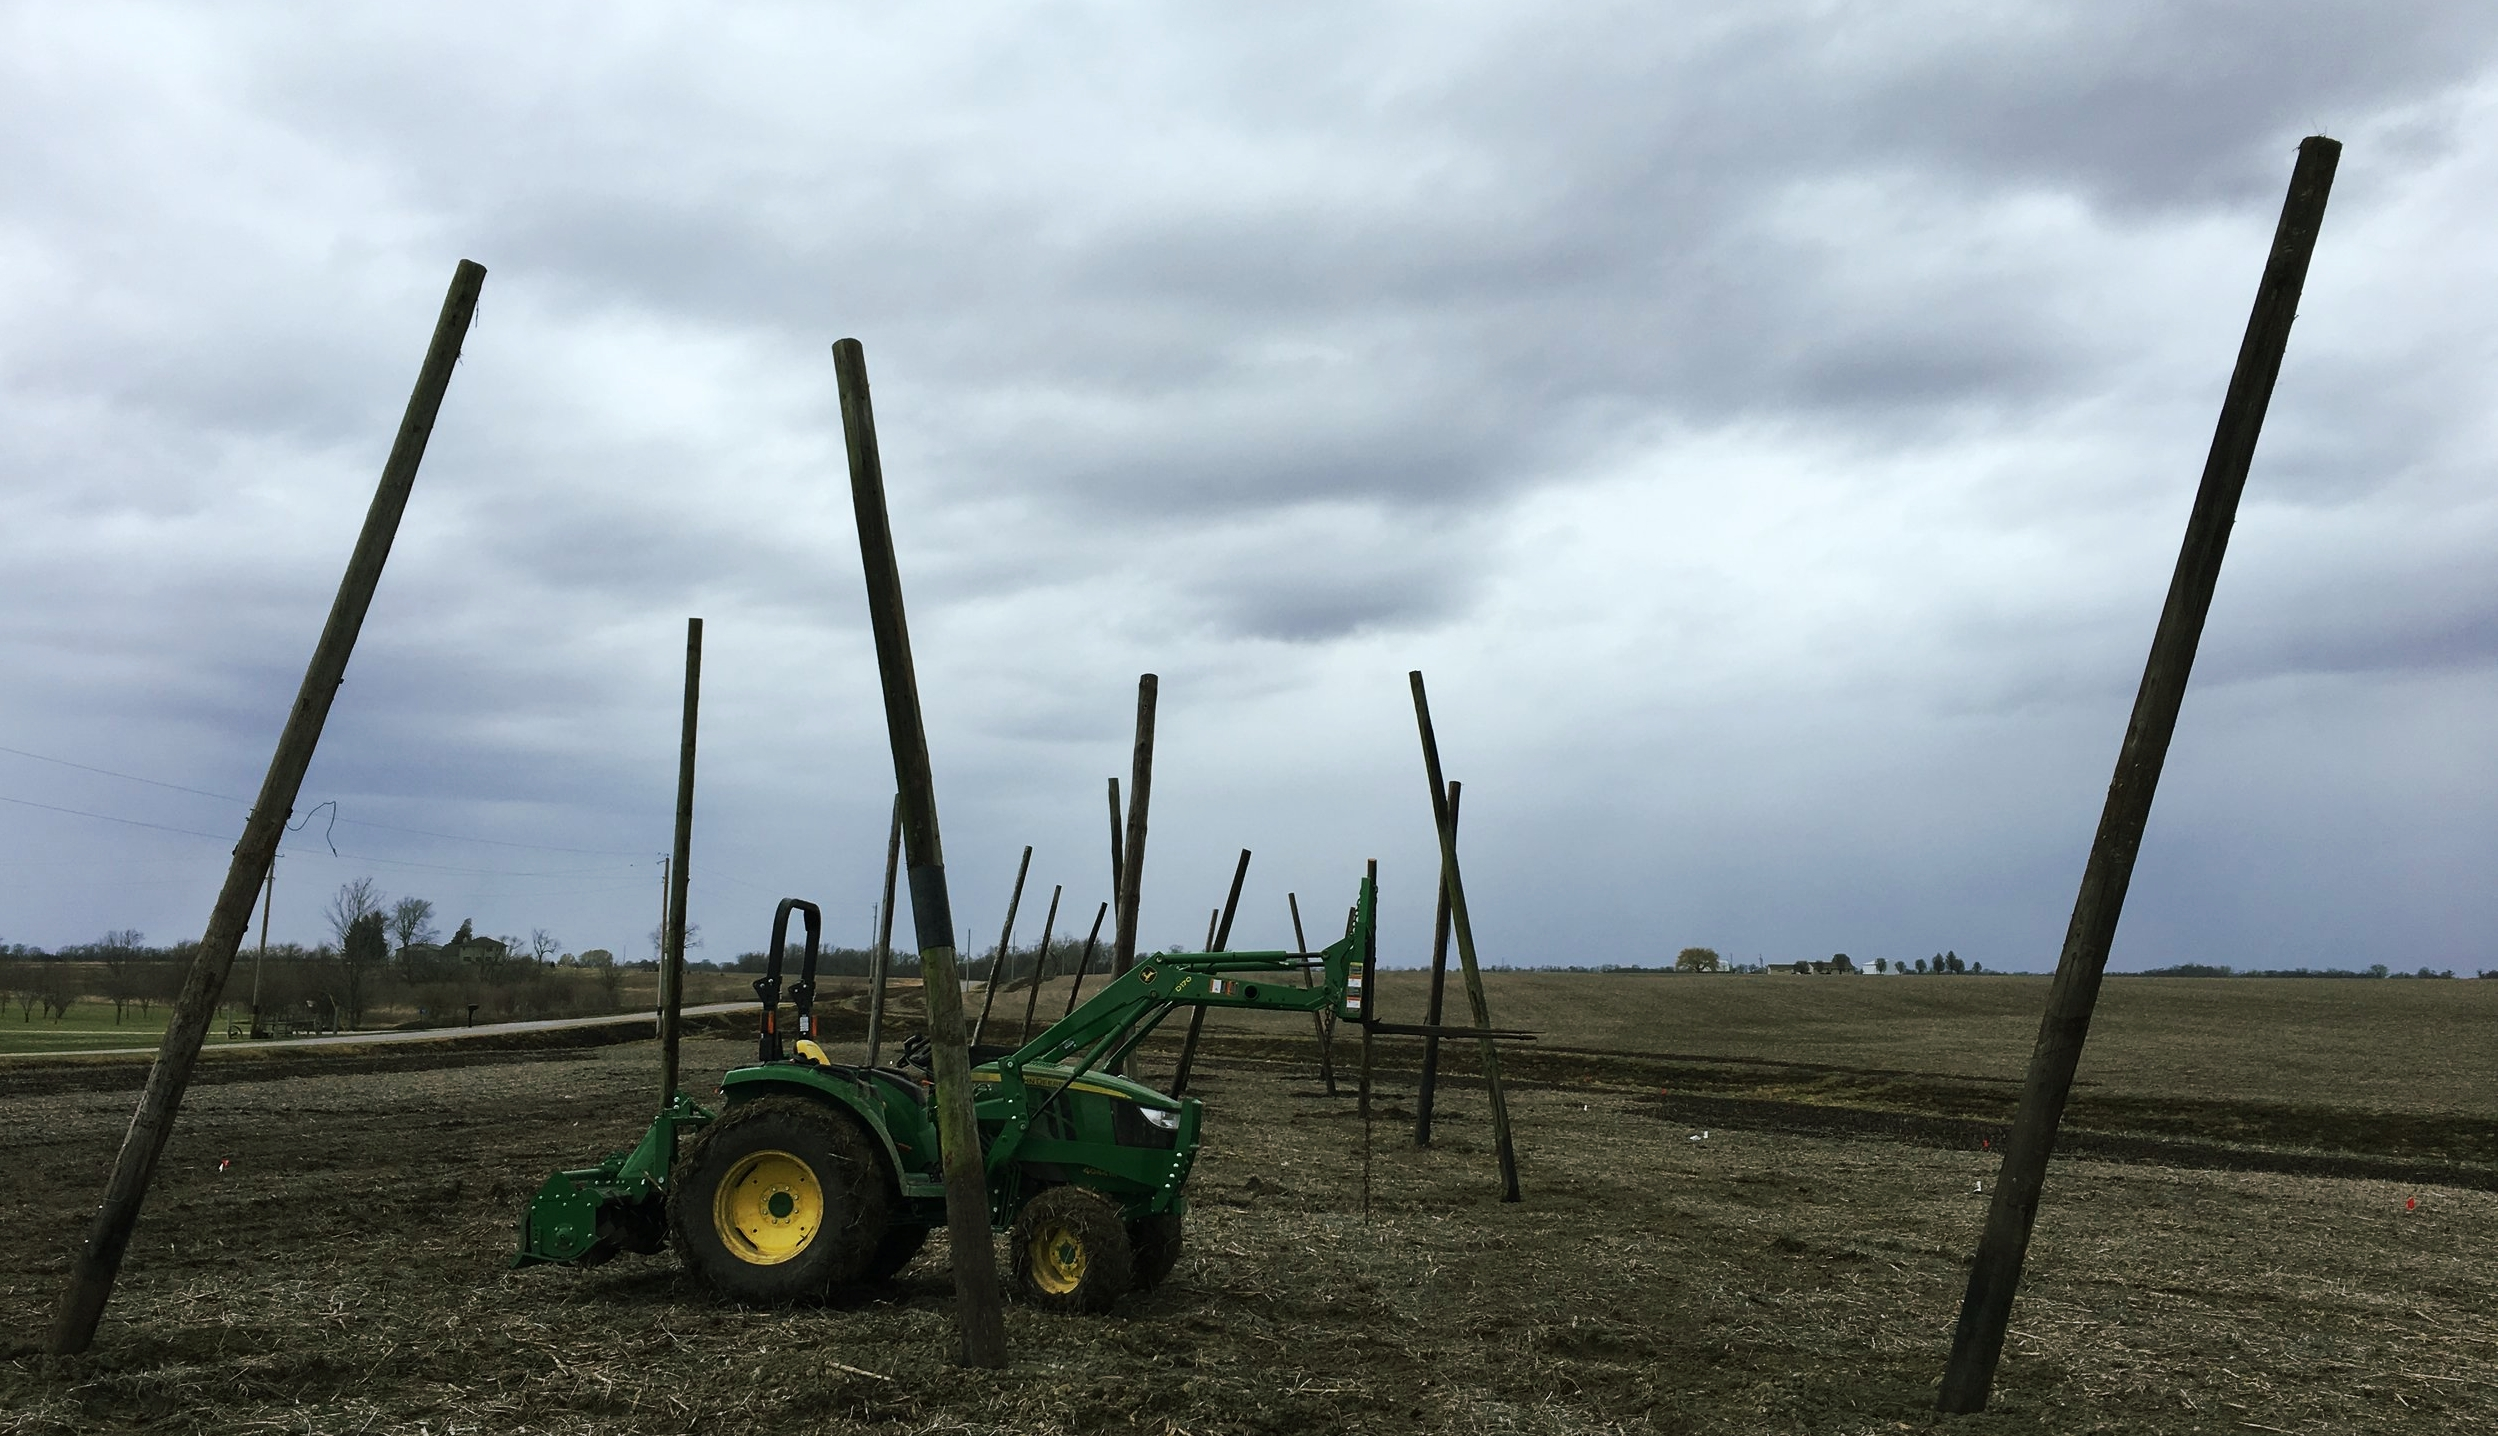 The mighty John Deere 4044 with the newly acquired palletforks.